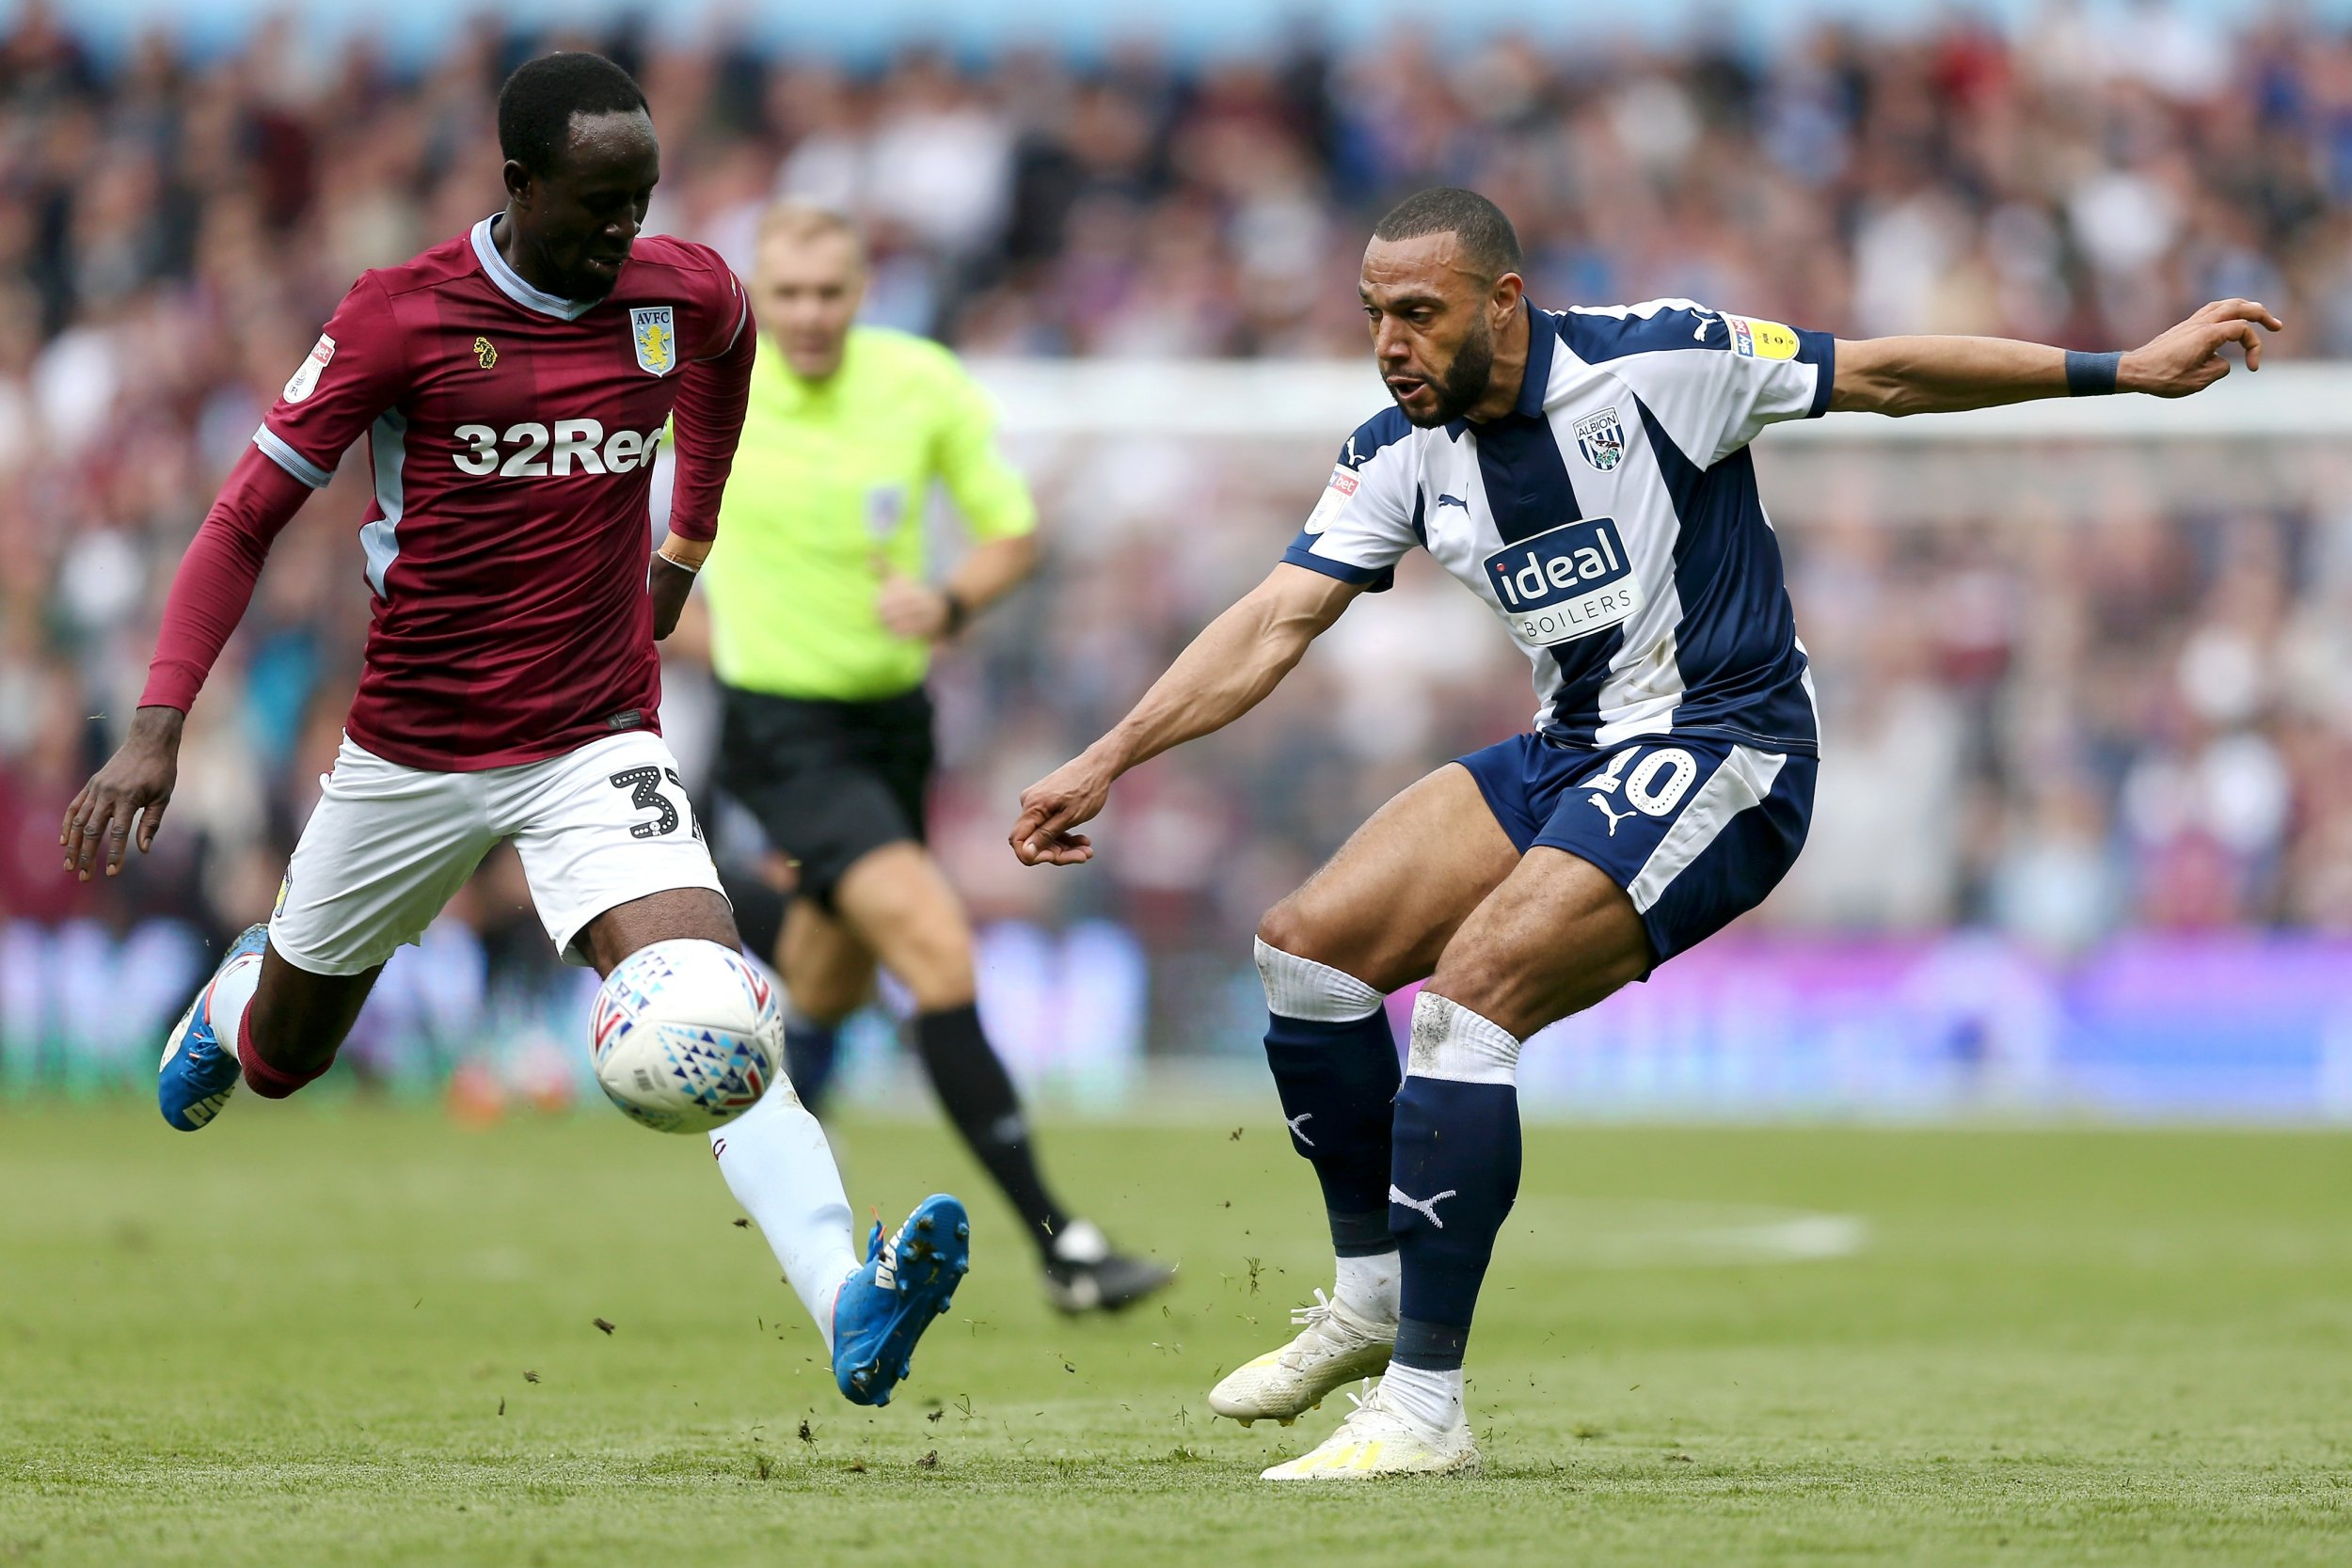 Albert Adomah v Matt Phillips Aston Villa 2 - 1 West Bromwich Albion